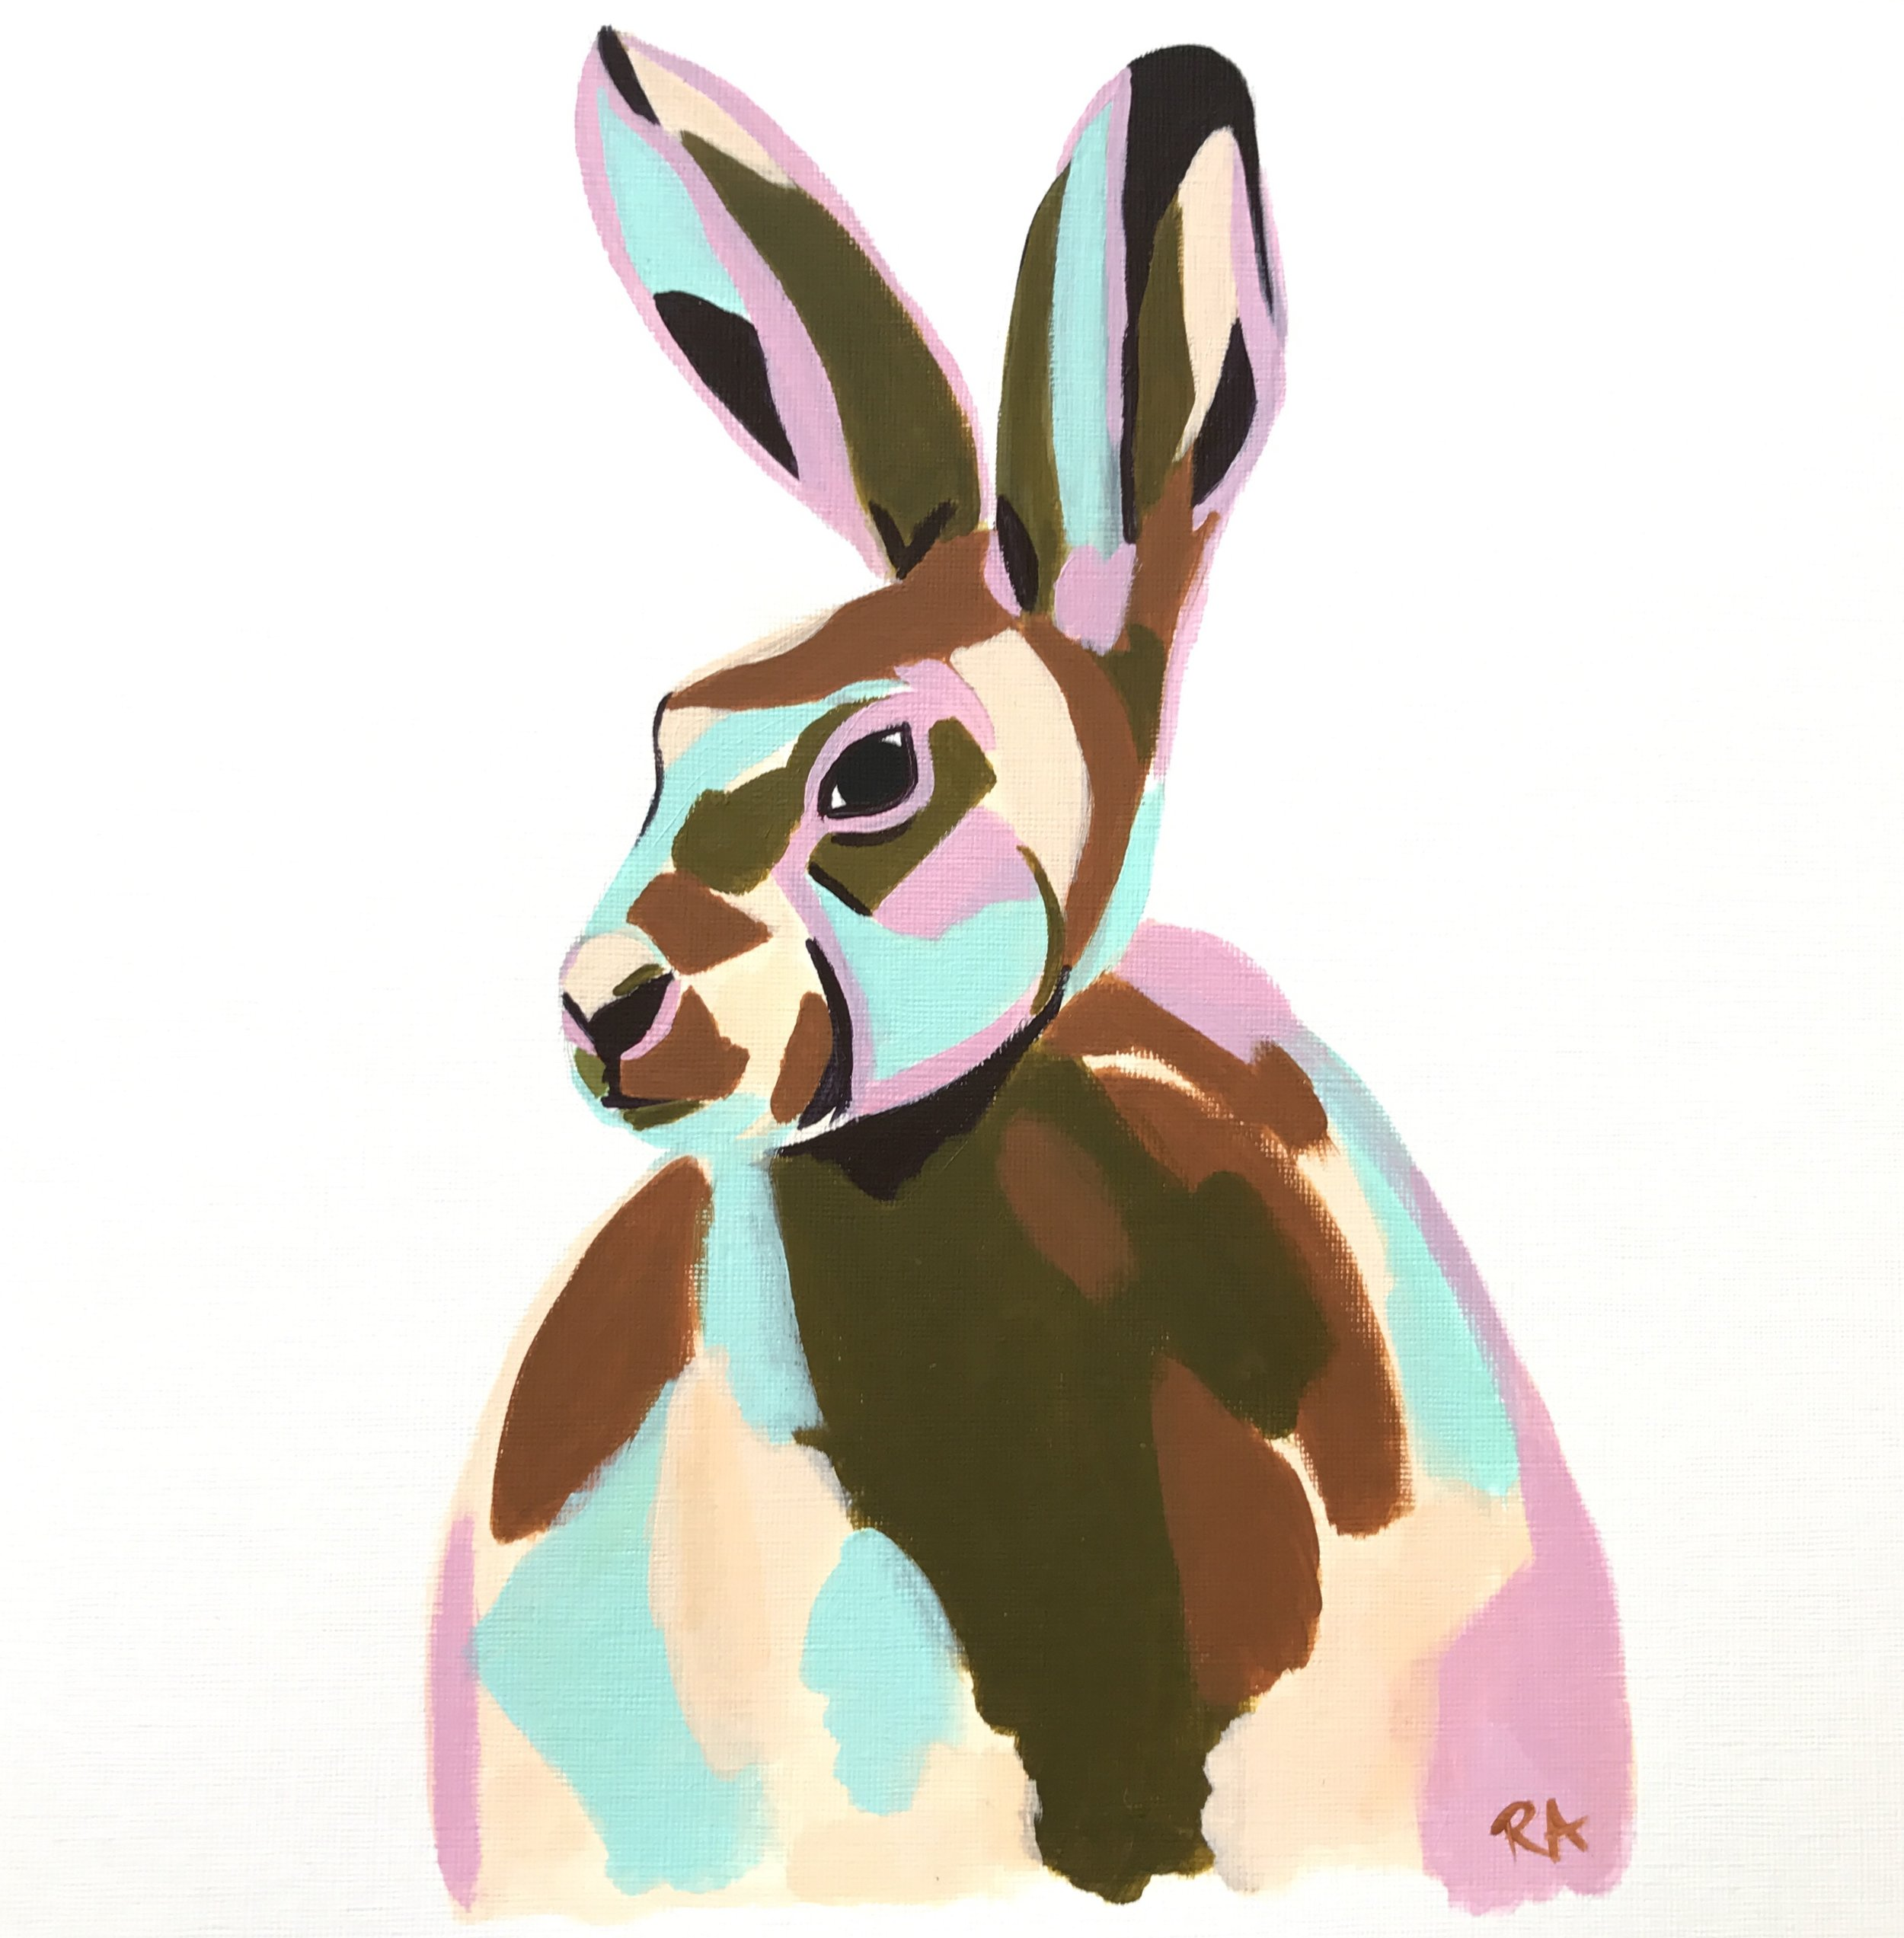 Untitled Hare, 2016